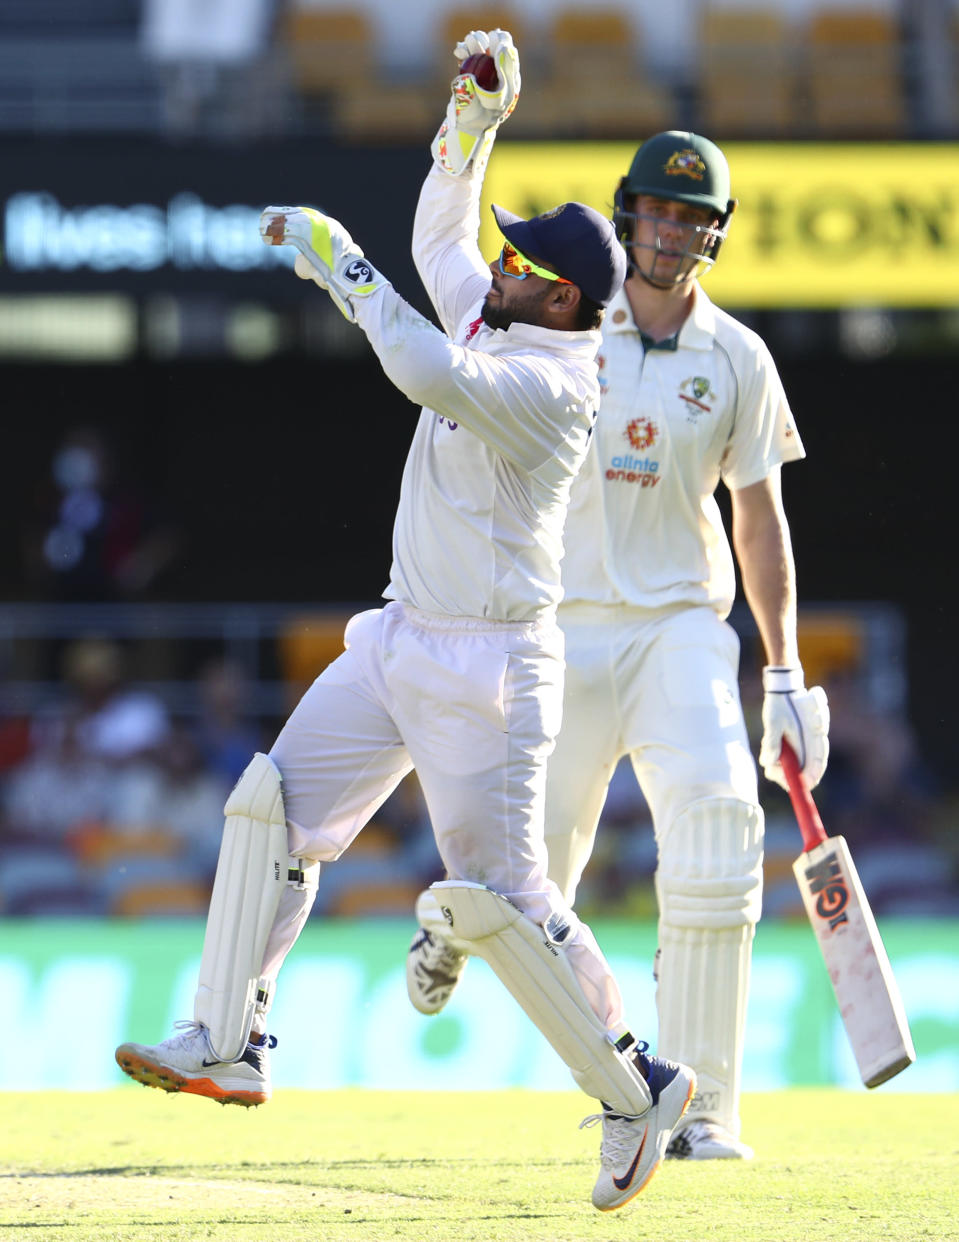 India's wicketkeeper Rishabh Pant catches the ball during play on the first day of the fourth cricket test between India and Australia at the Gabba, Brisbane, Australia, Friday, Jan. 15, 2021. (AP Photo/Tertius Pickard)